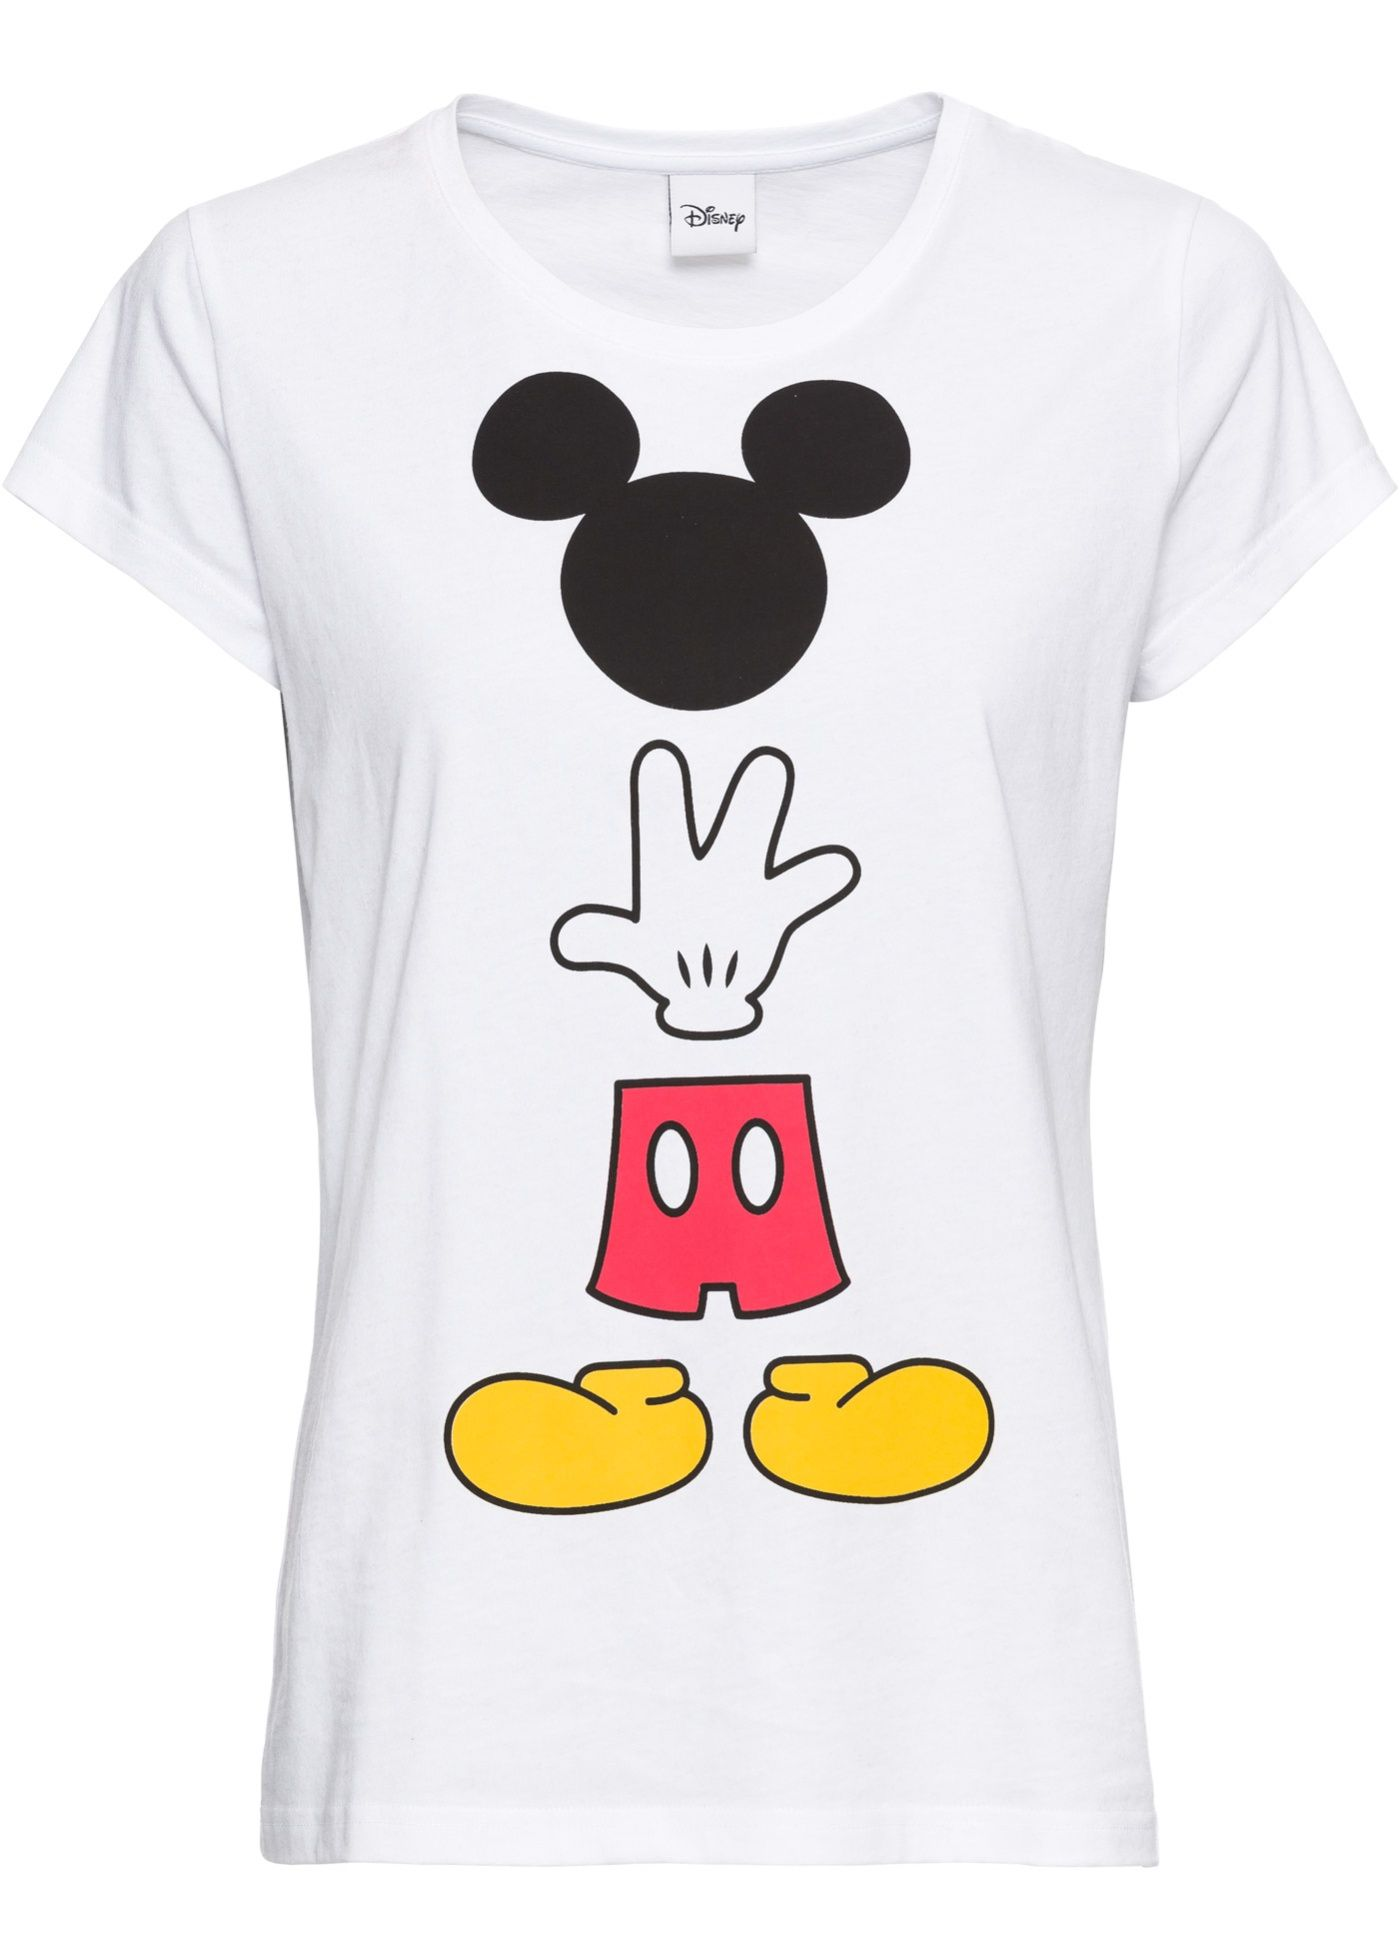 T Shirt Mickey Mouse In 2020 Mickey Mouse T Shirt T Shirt Und Online Shoppen